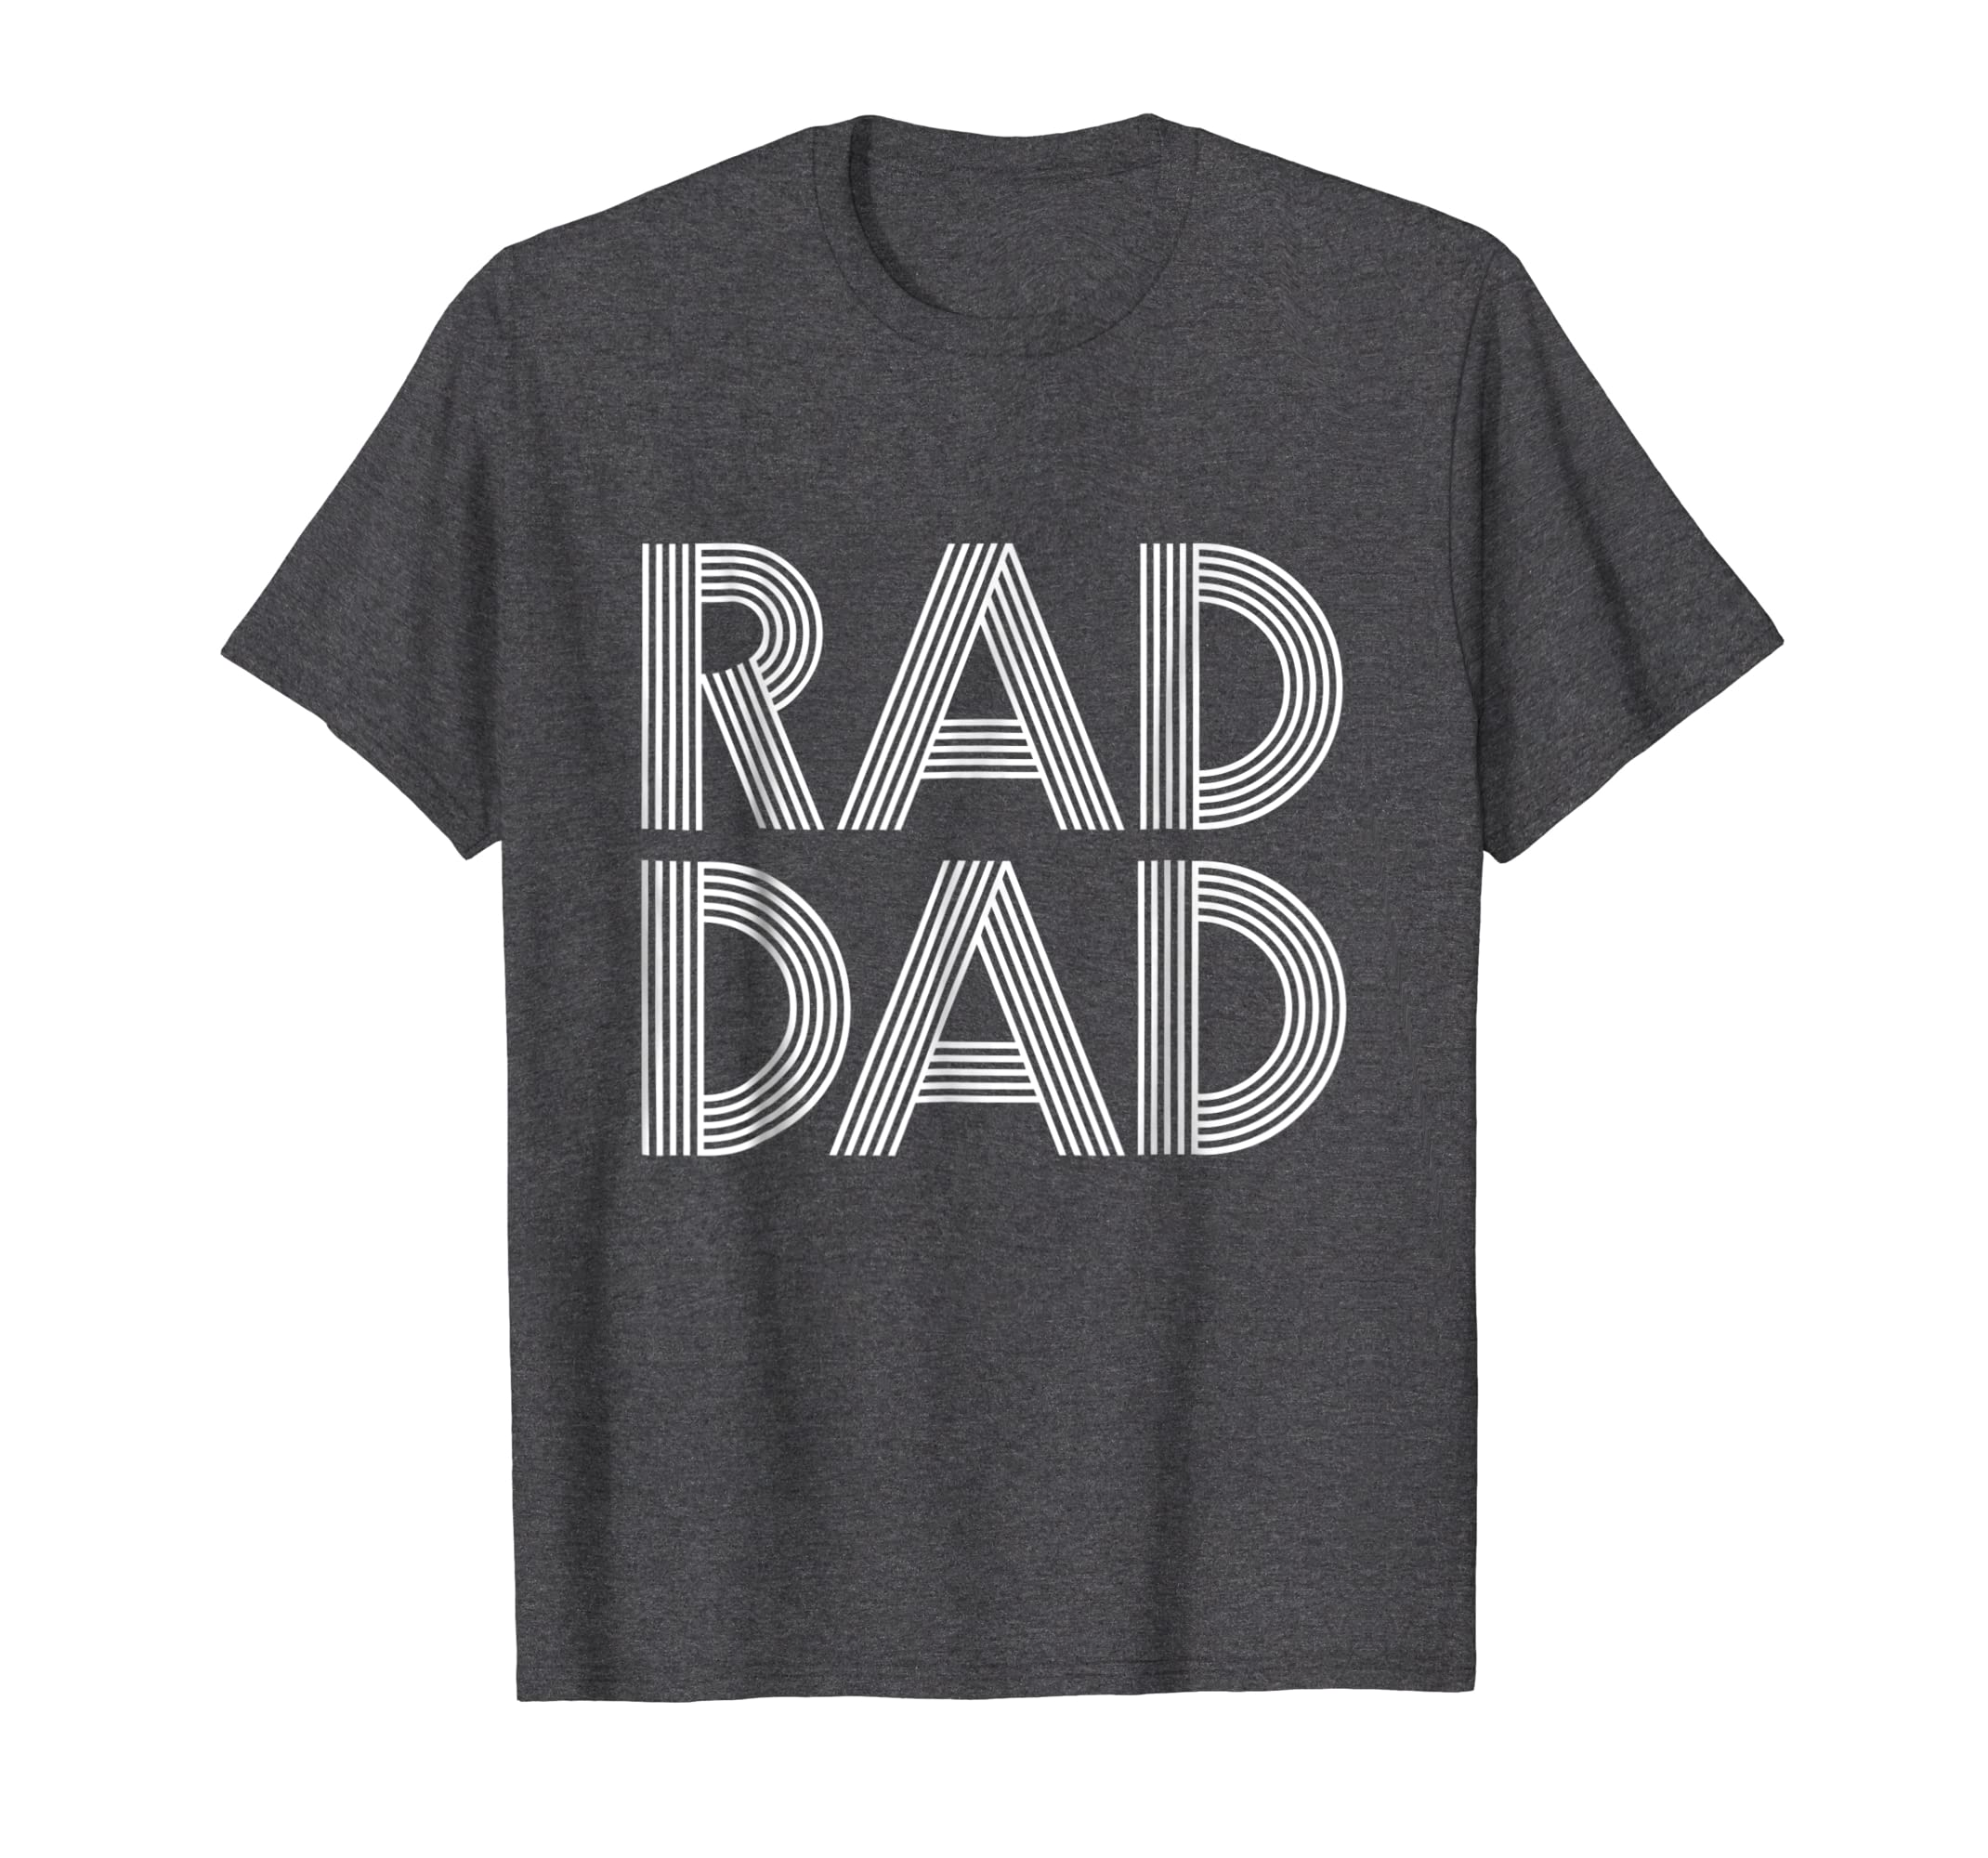 a585b4e45 Amazon.com: Mens Father's Day Gift T-Shirt | Rad Dad | Gift for Daddy:  Clothing